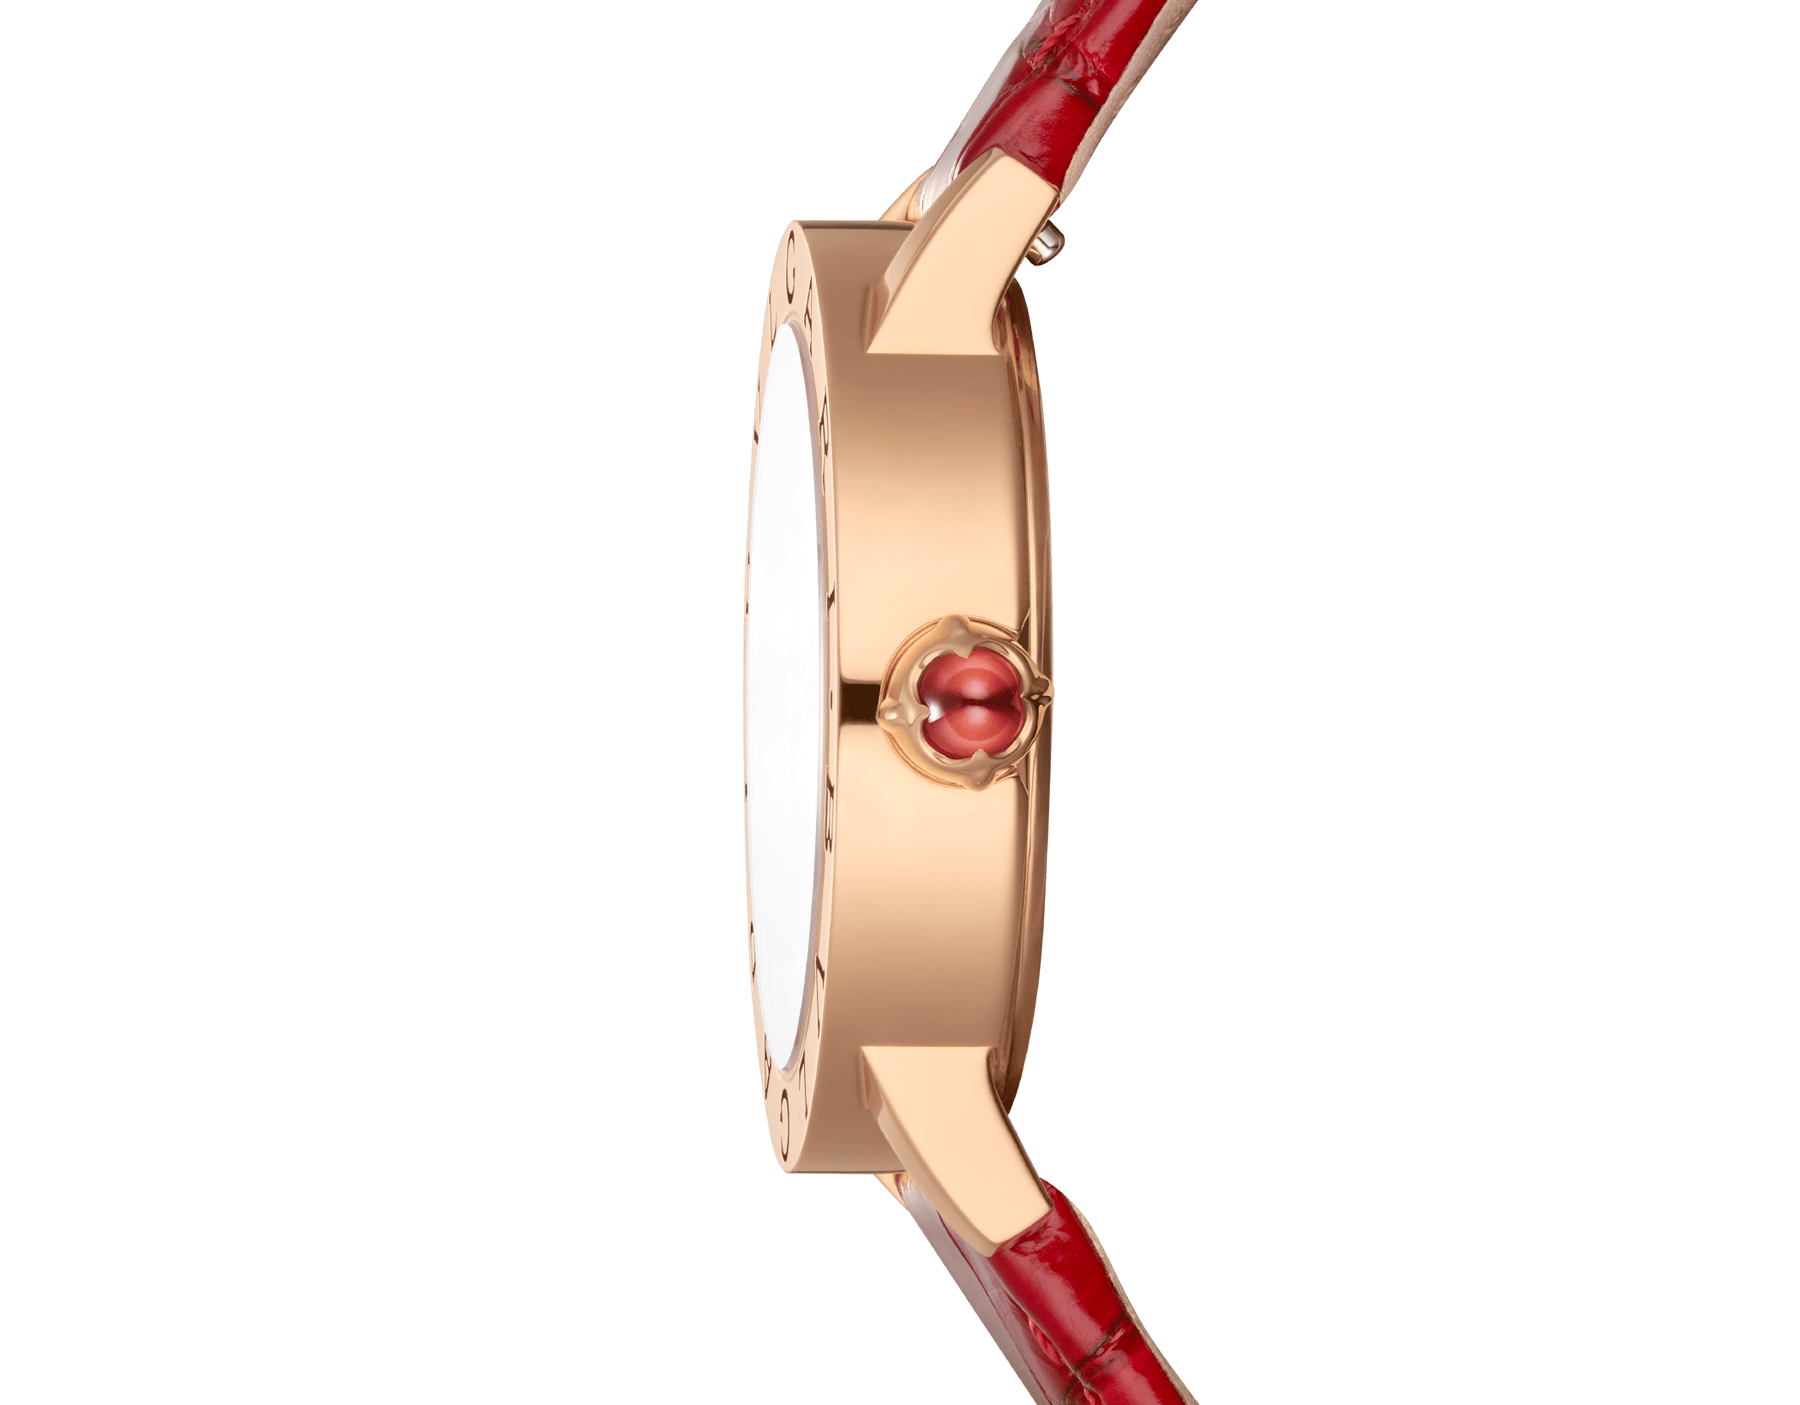 BVLGARI BVLGARI watch with 18 kt rose gold case, white mother-of-pearl dial, diamond indexes and shiny red alligator bracelet 102750 image 3